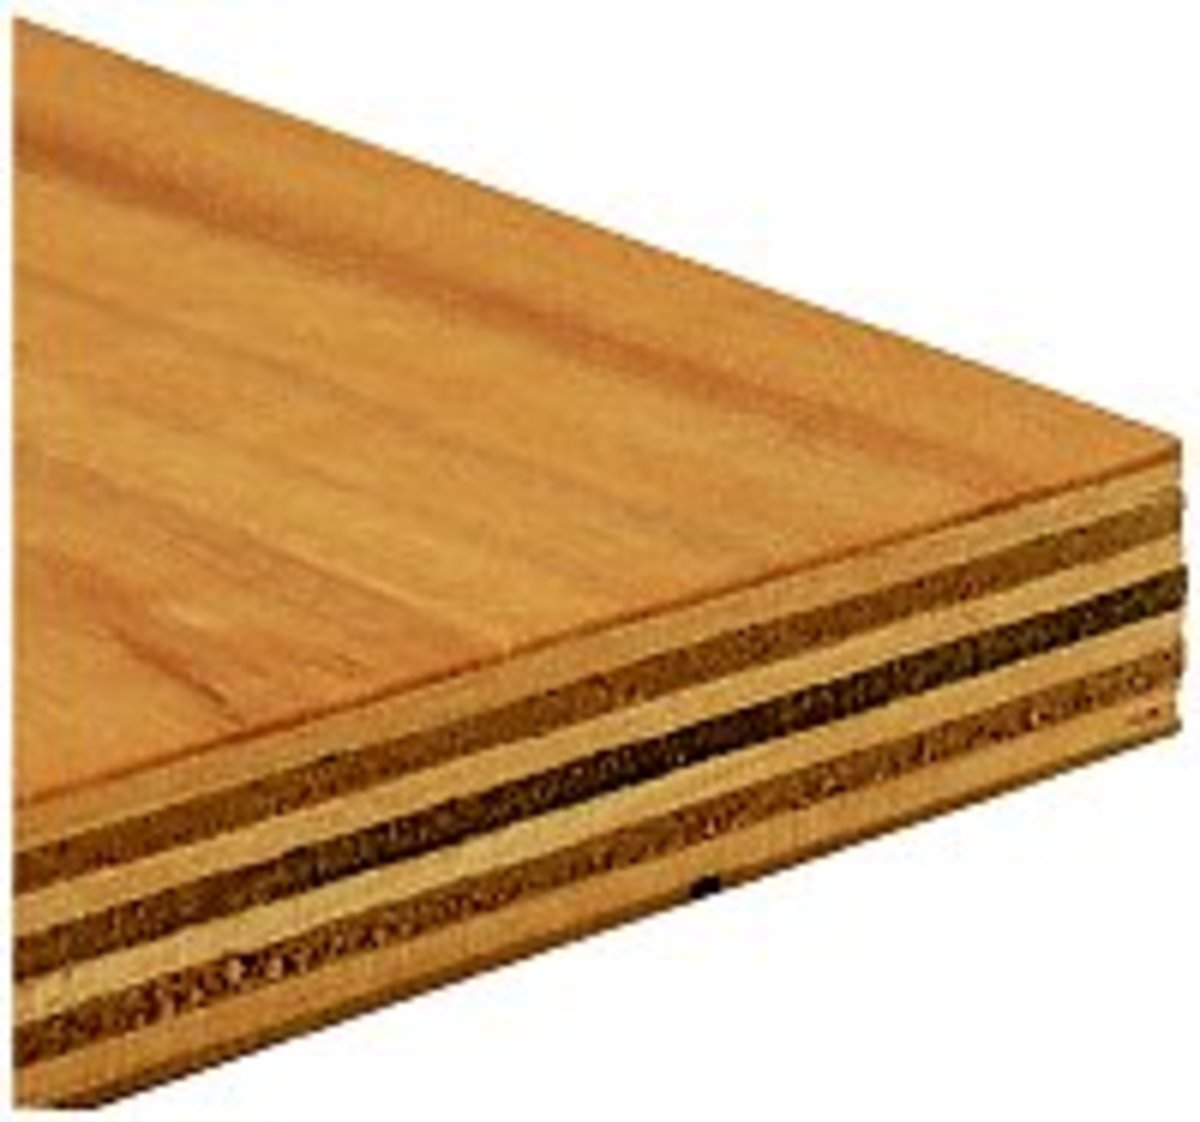 A Plywood Edge To Hide